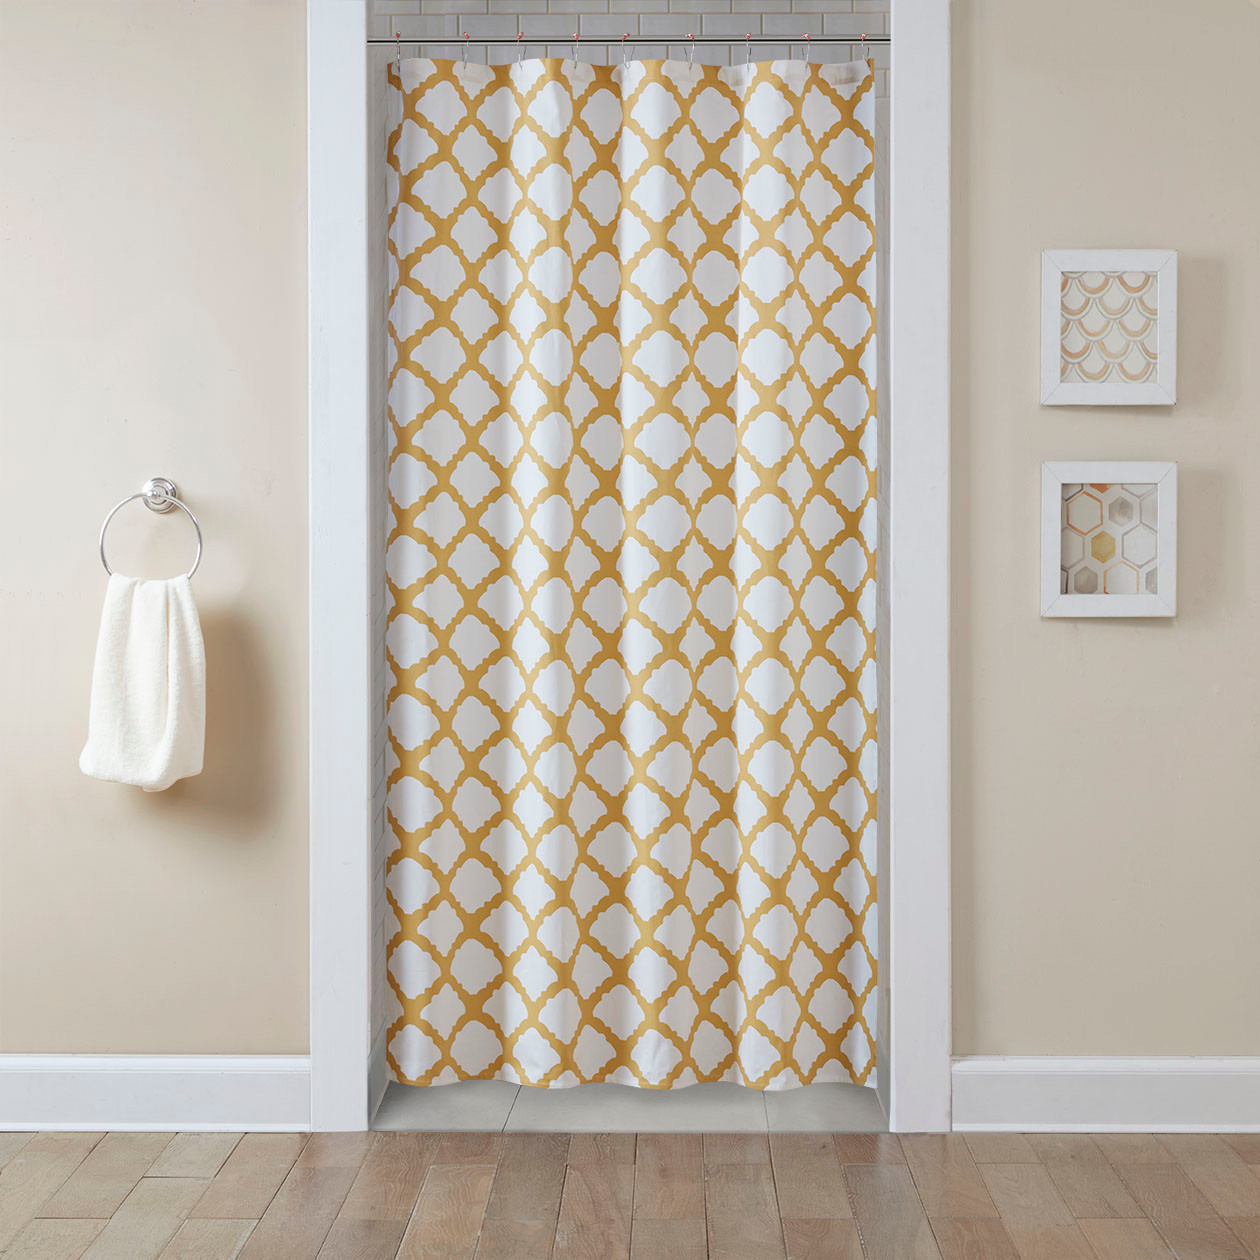 Floral Shower Curtain | Americana Shower Curtains | Whimsical Shower Curtains